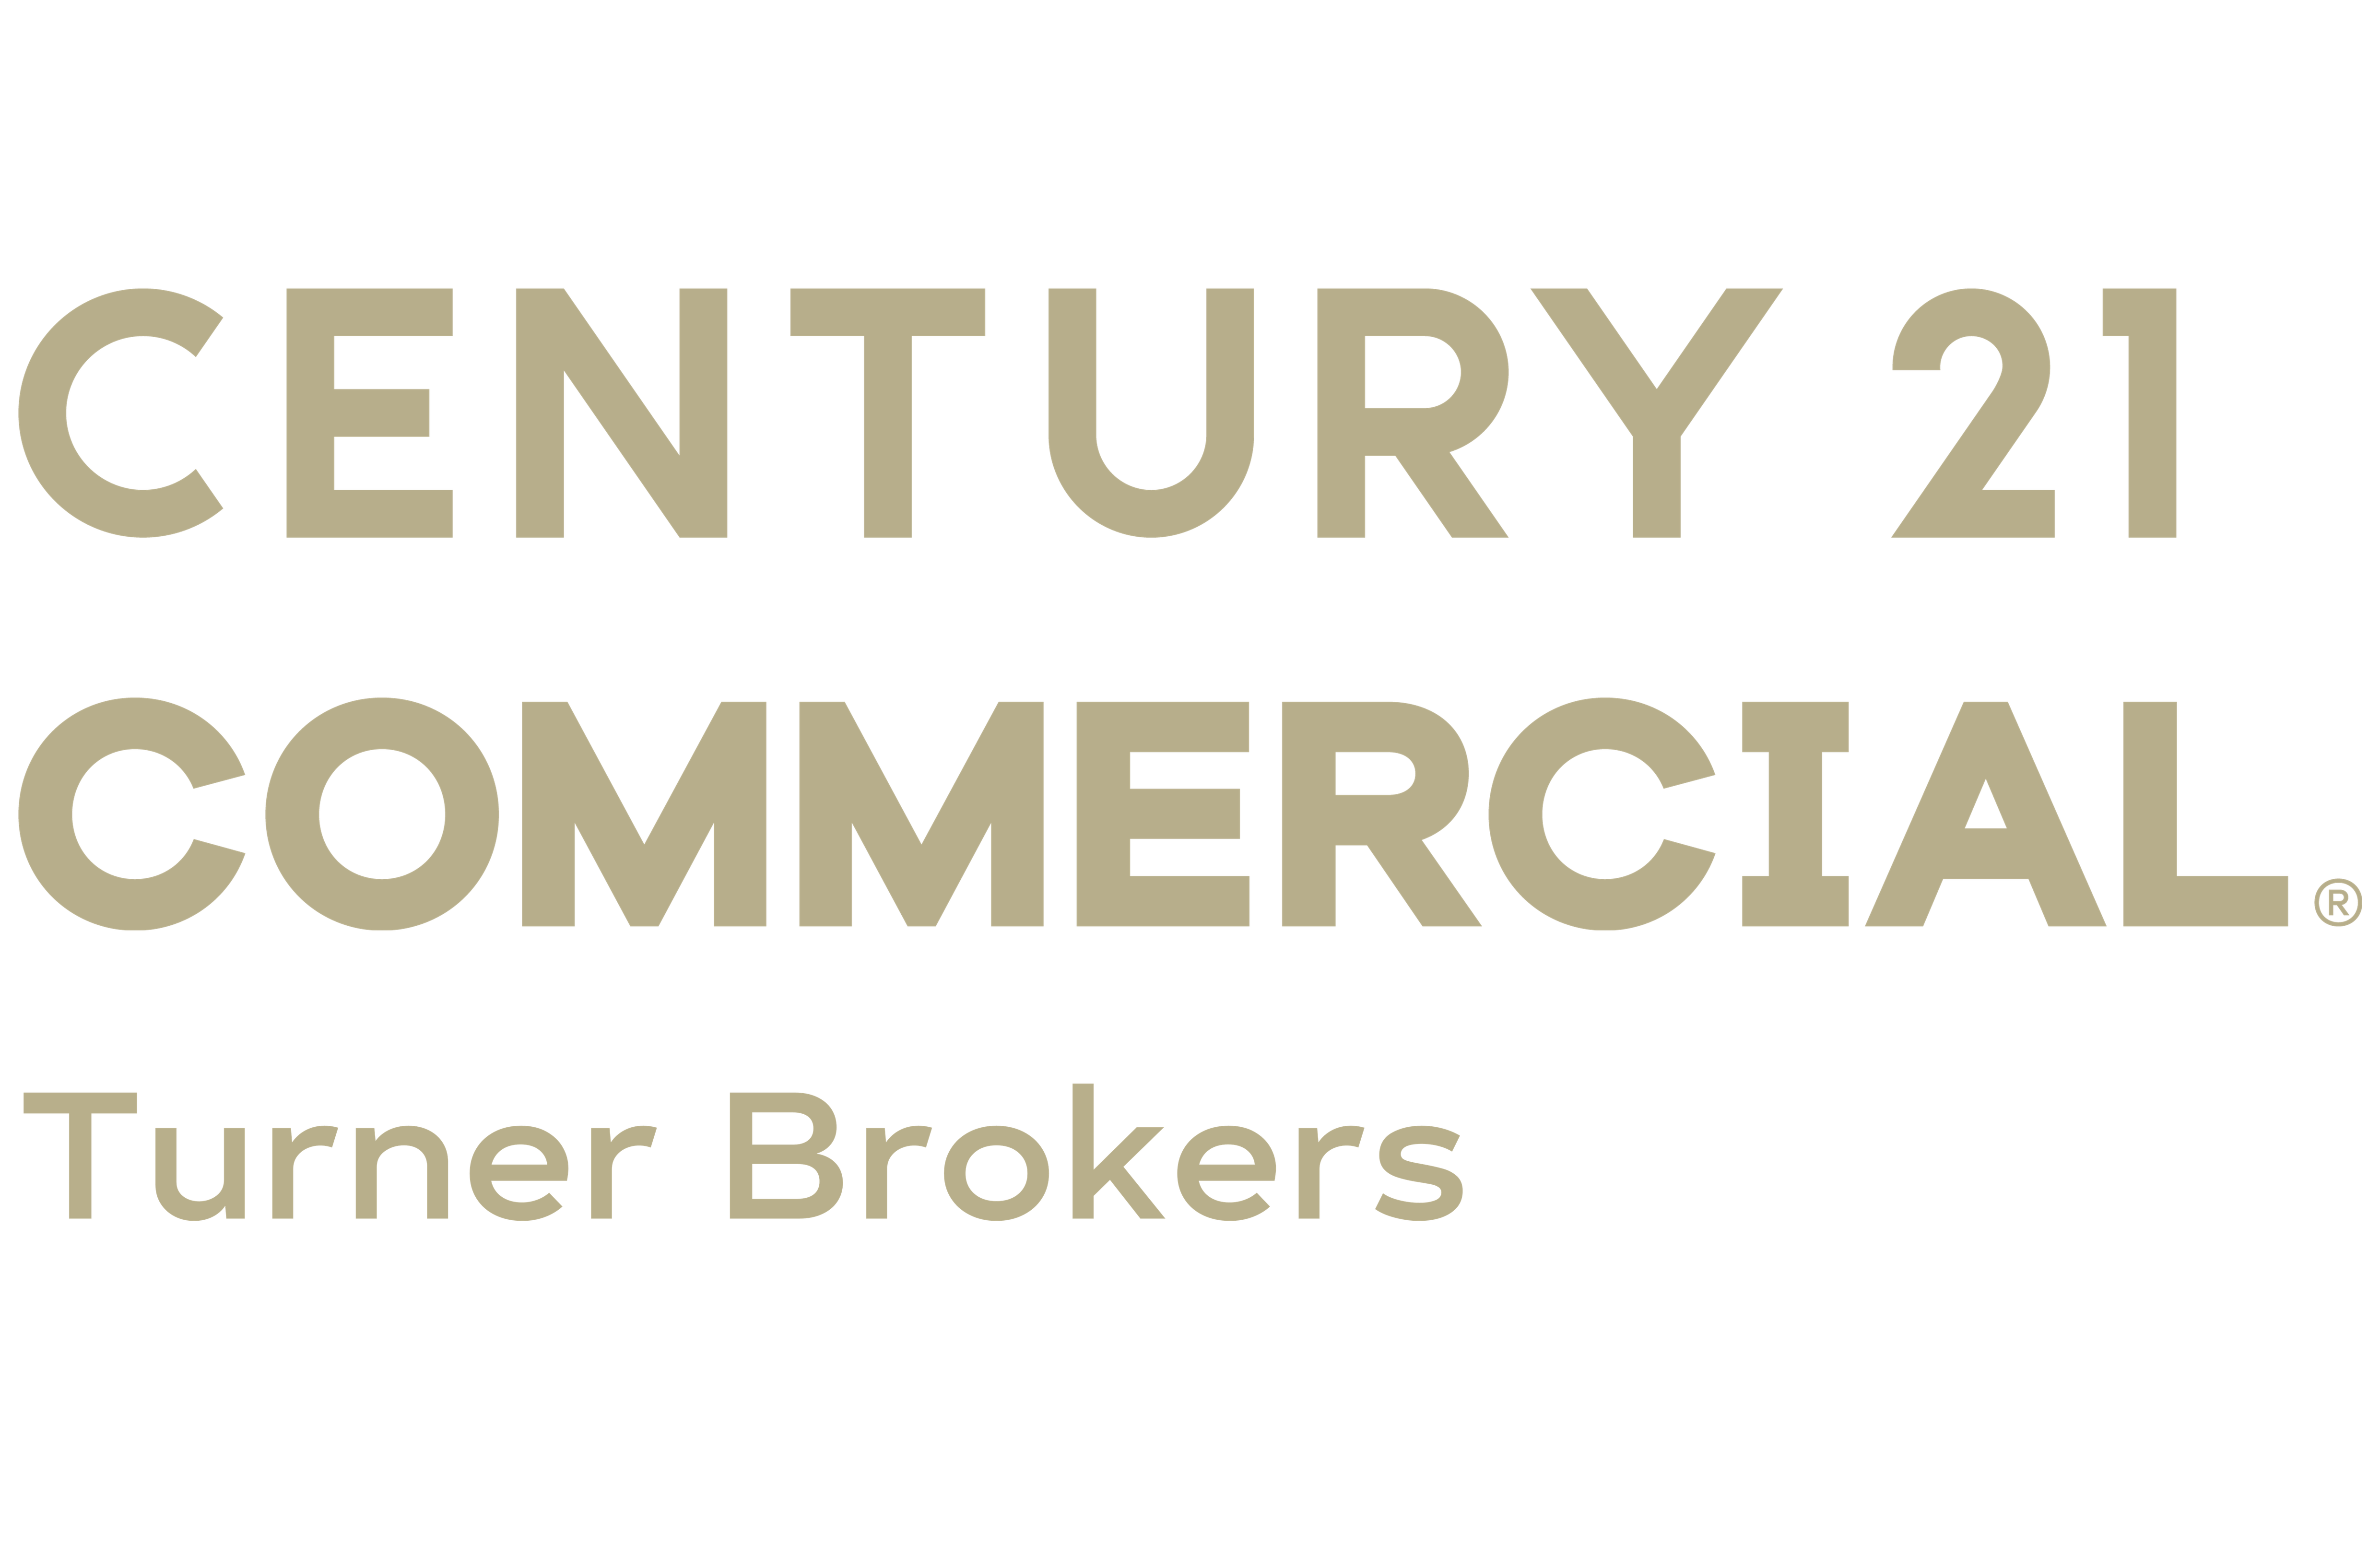 CENTURY 21 Turner Brokers